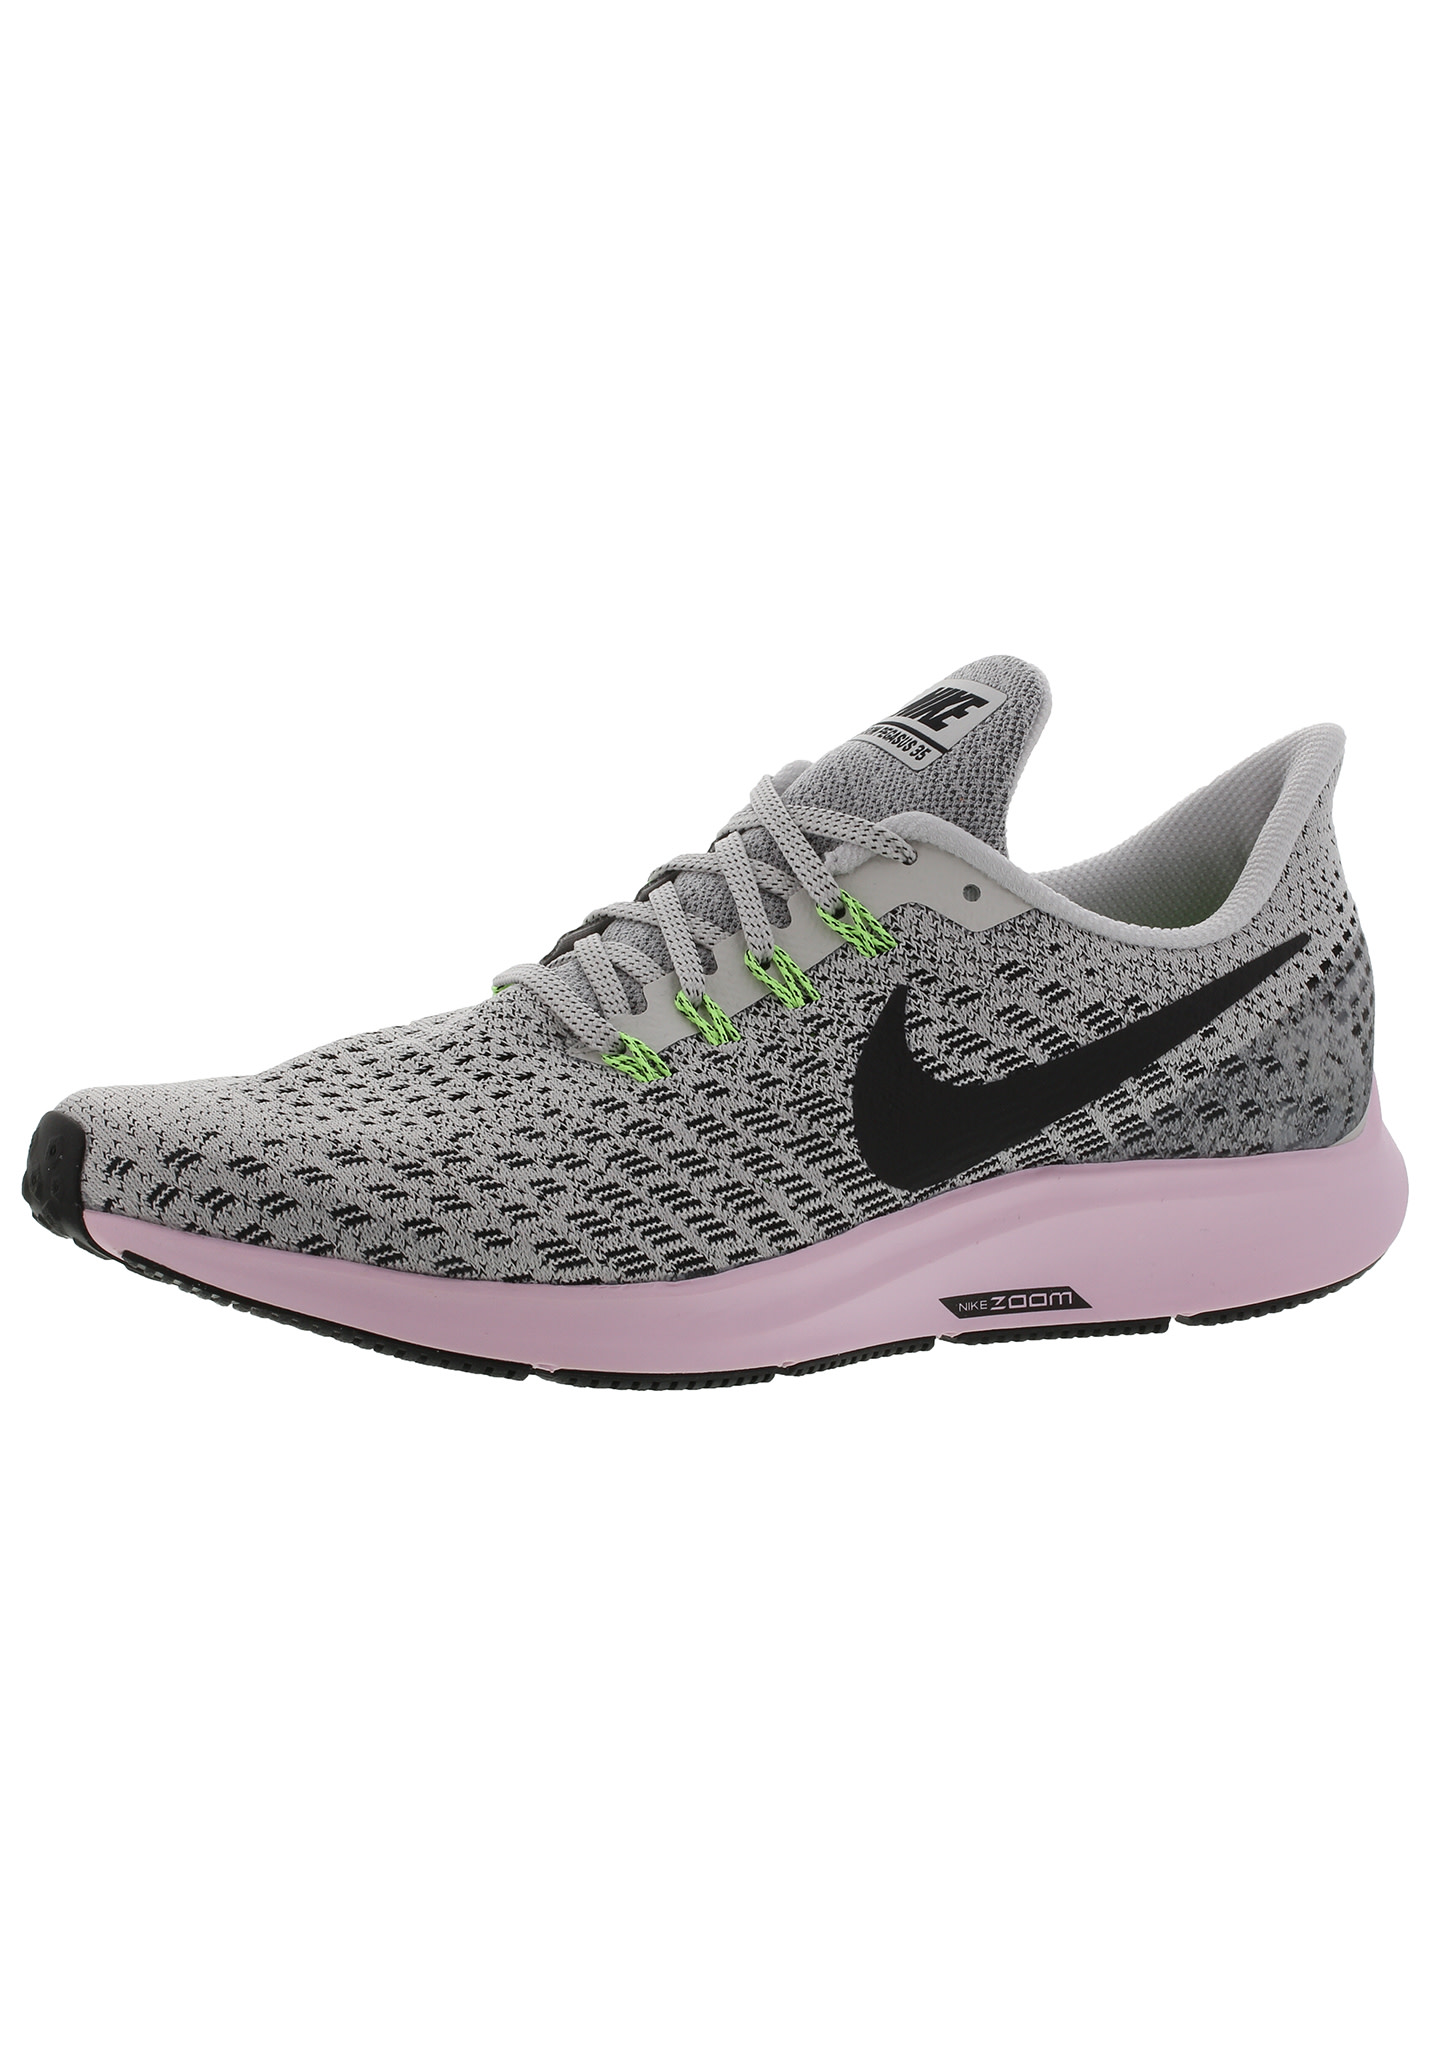 589f57a3 Nike Air Zoom Pegasus 35 - Running shoes for Women - Grey